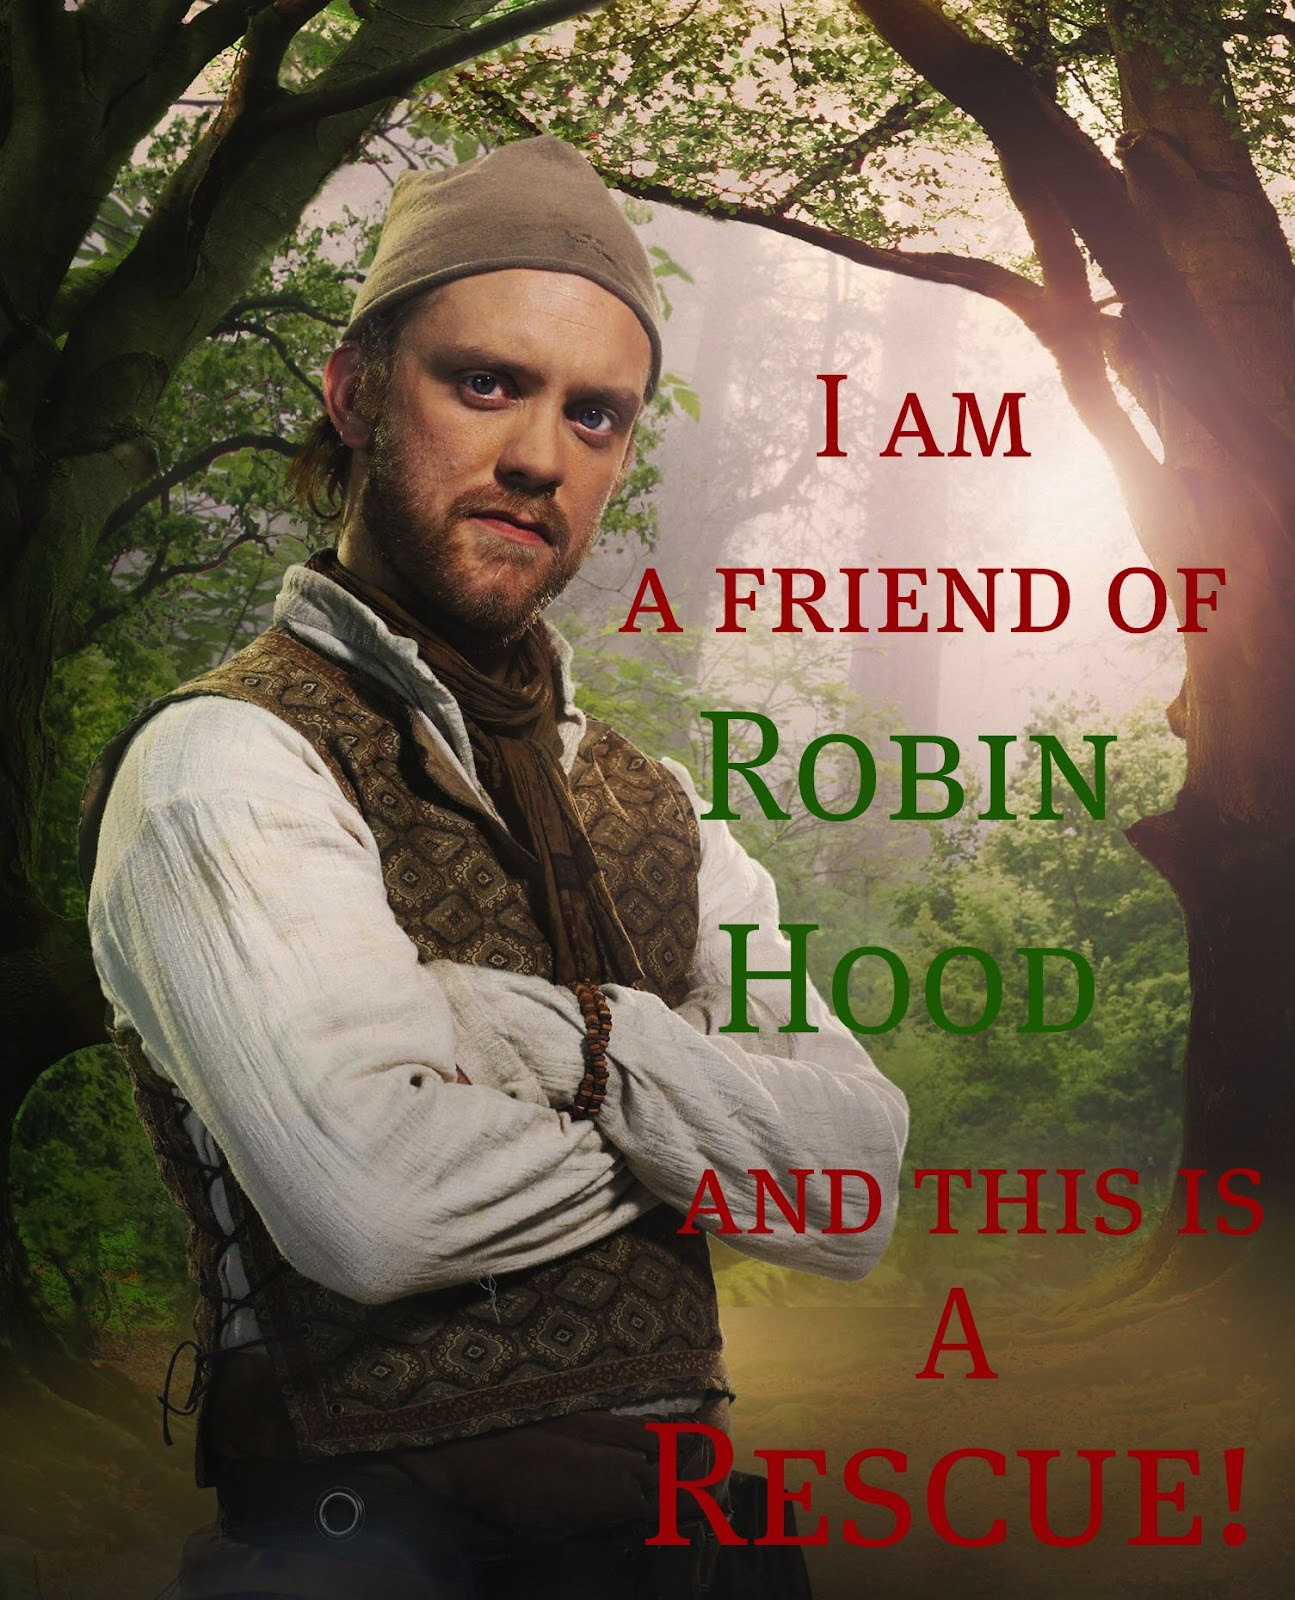 Old Fashioned Man Quotes: Old-Fashioned Charm: Robin Hood (BBC TV Series